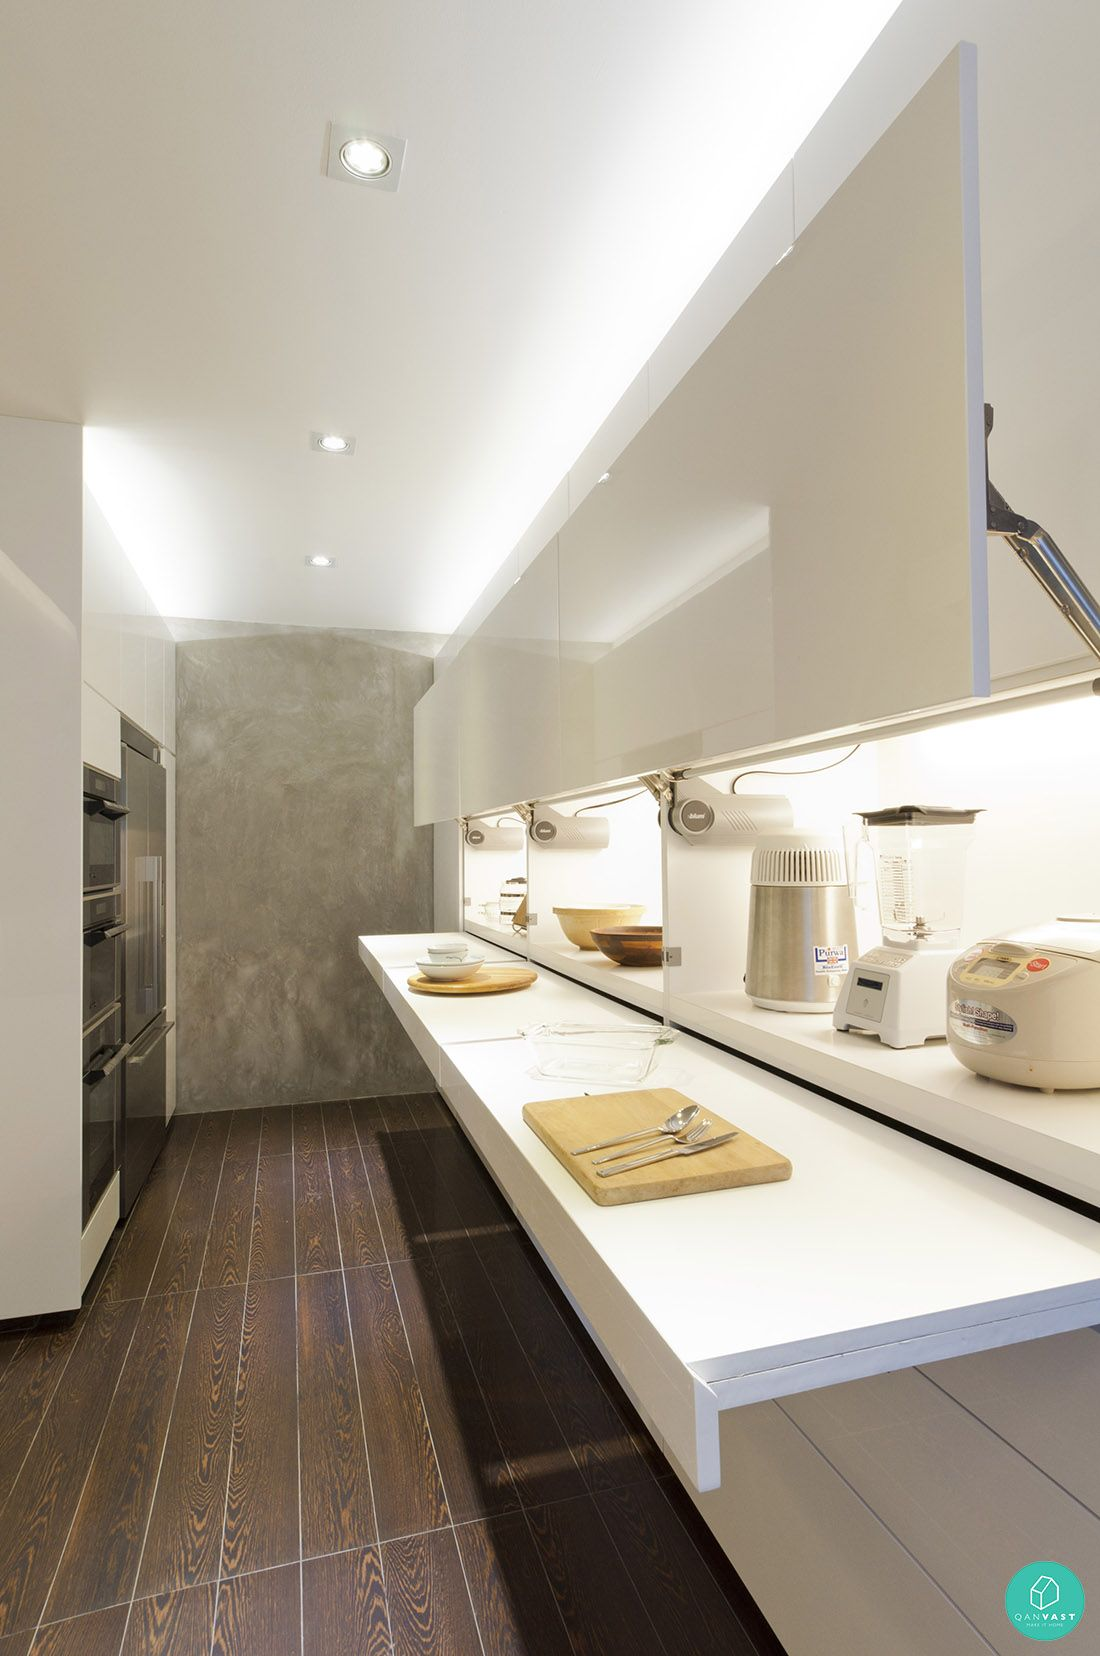 Smart Designs For Small Spaces In Singapore Homes Kitchen Interior Design Modern Pantry Design Interior Design Kitchen